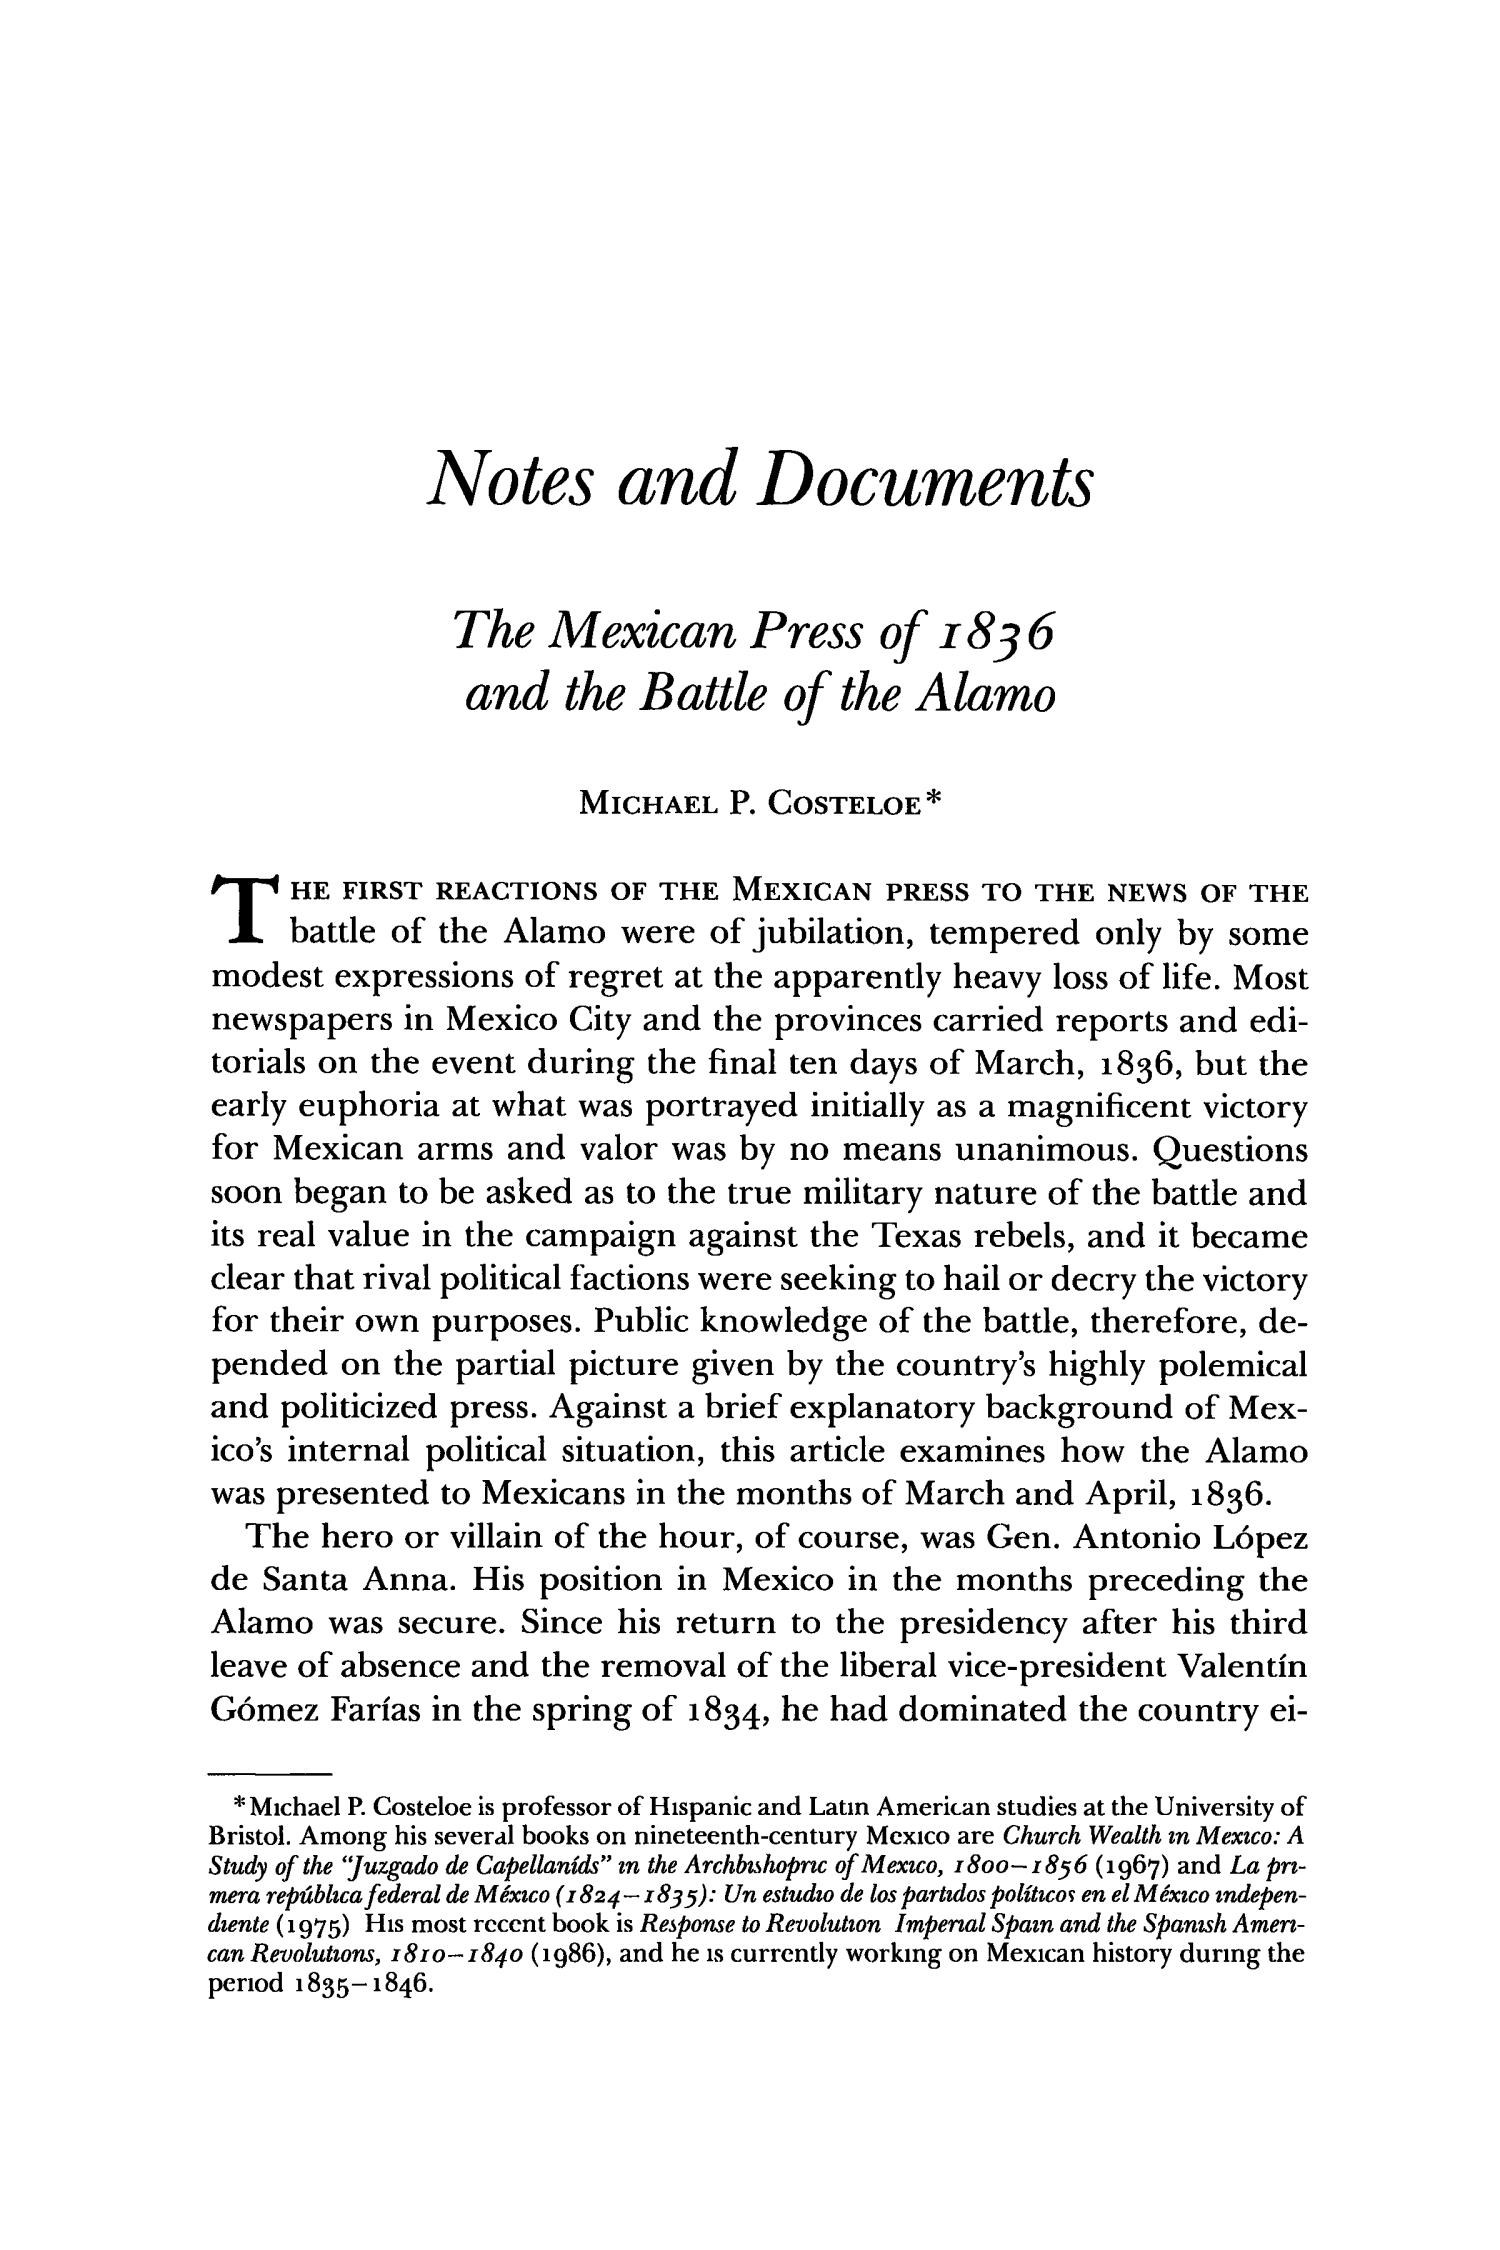 The Southwestern Historical Quarterly, Volume 91, July 1987 - April, 1988                                                                                                      533